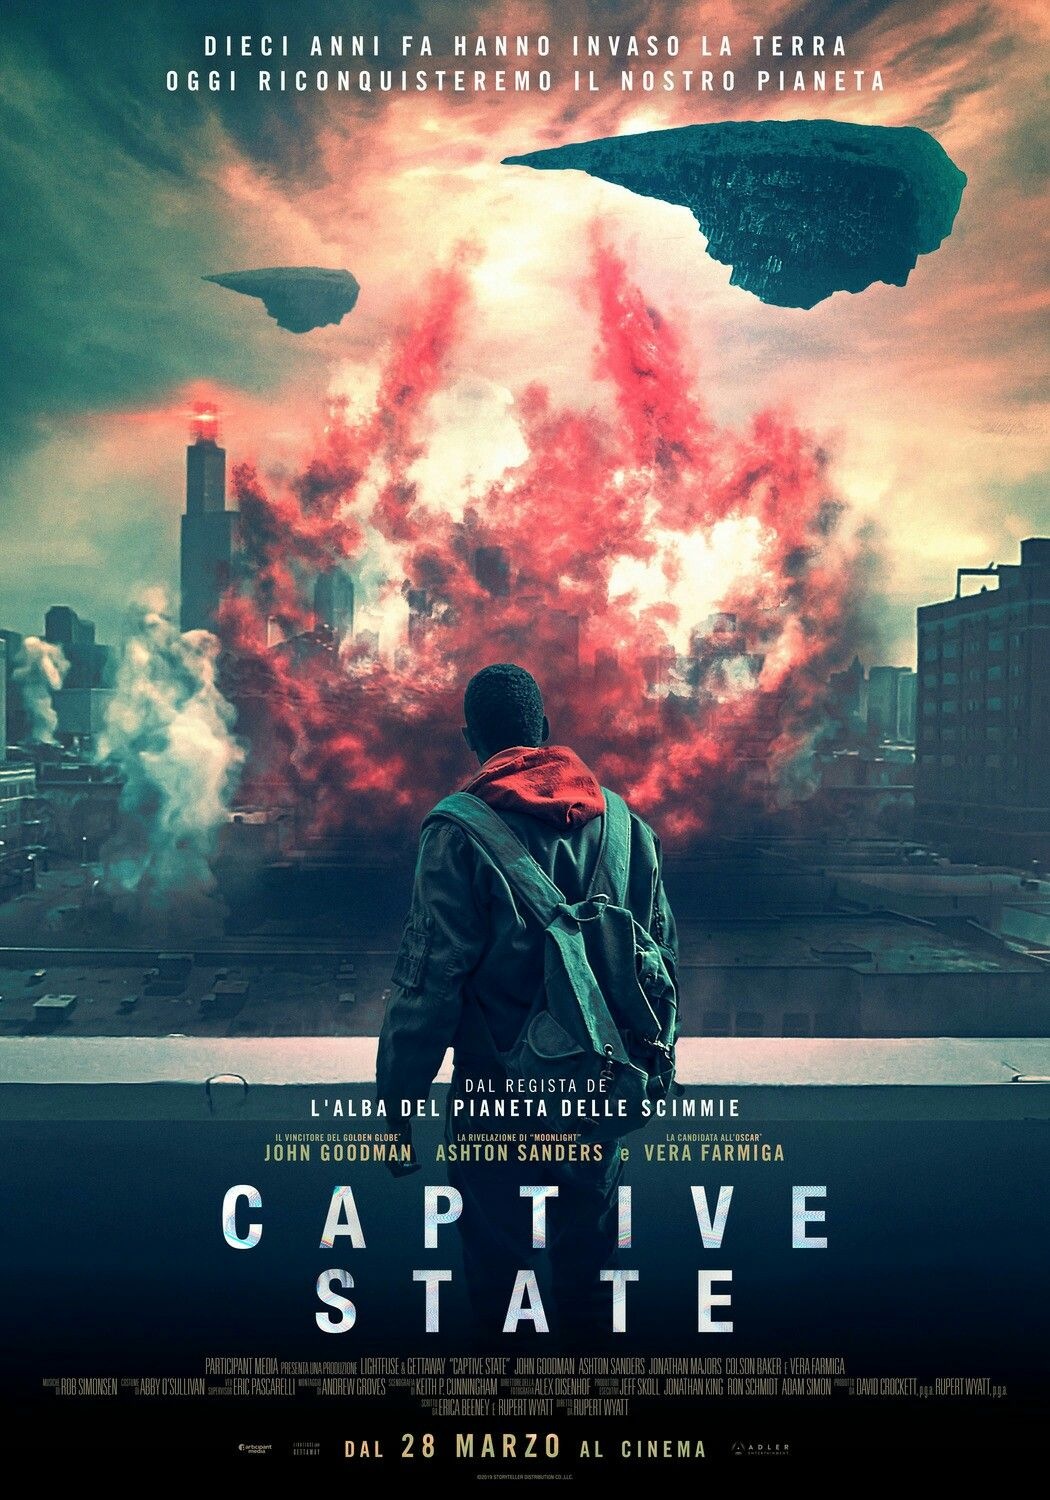 New Italian Poster For The Sci Fi Captive State Captivestate